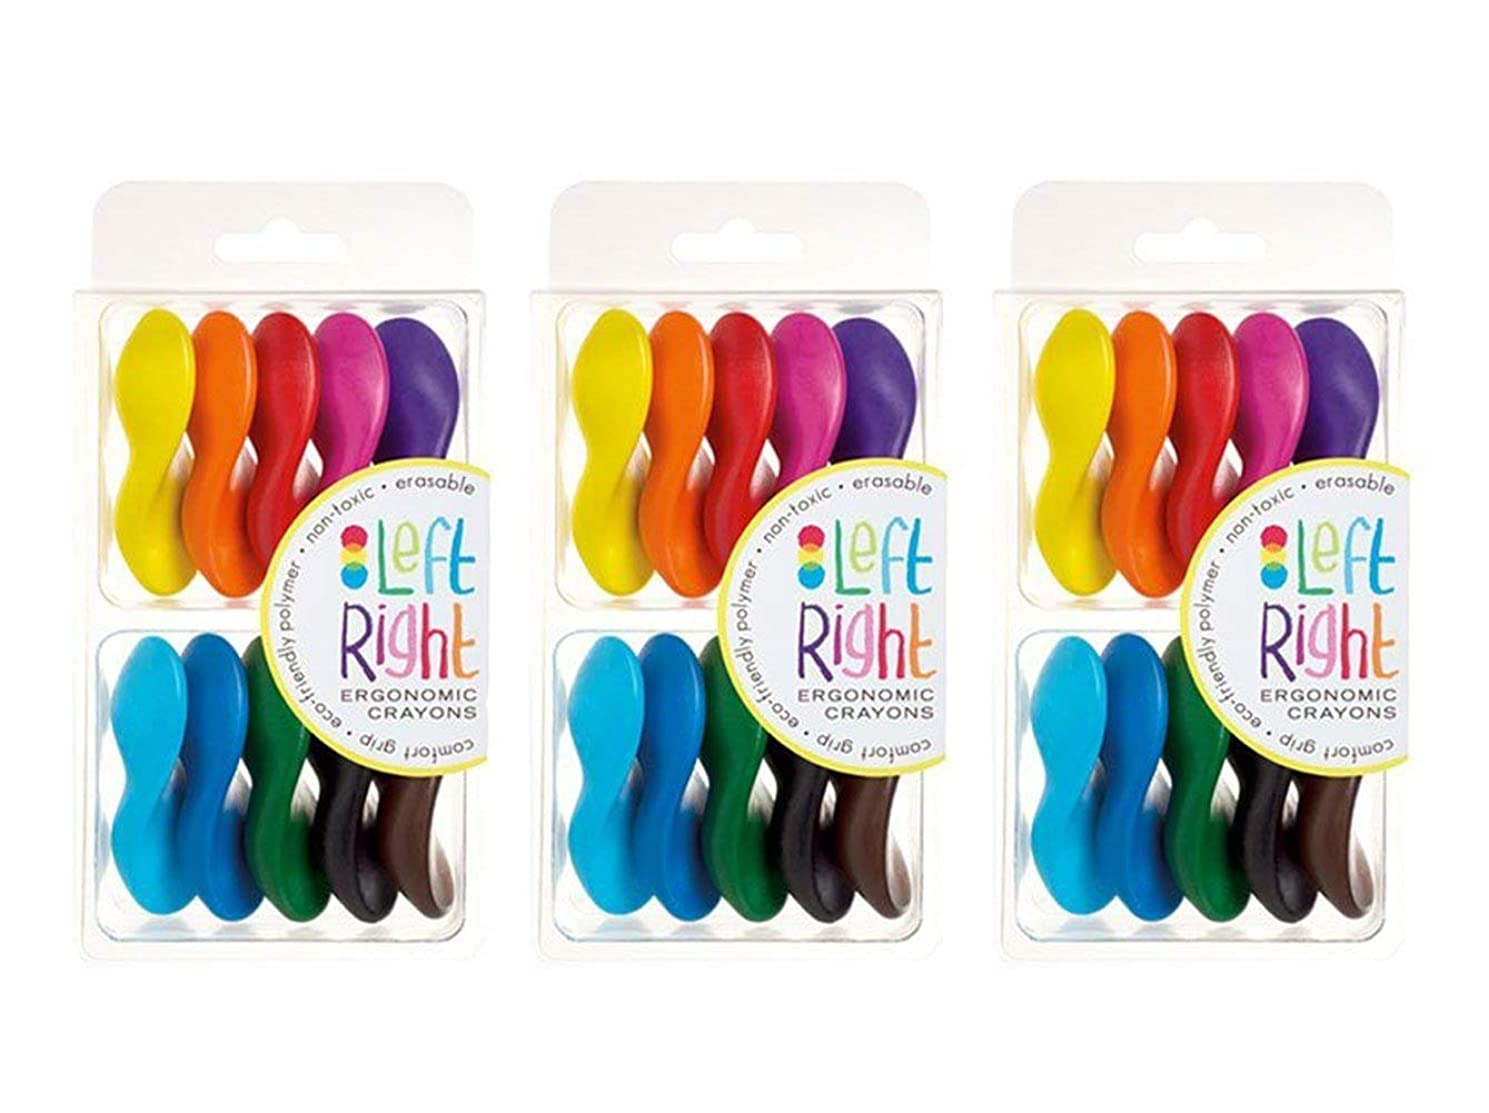 Non-Toxic, Ergonomic, Left Right Crayons, 30 Crayons (3 Sets of 10)